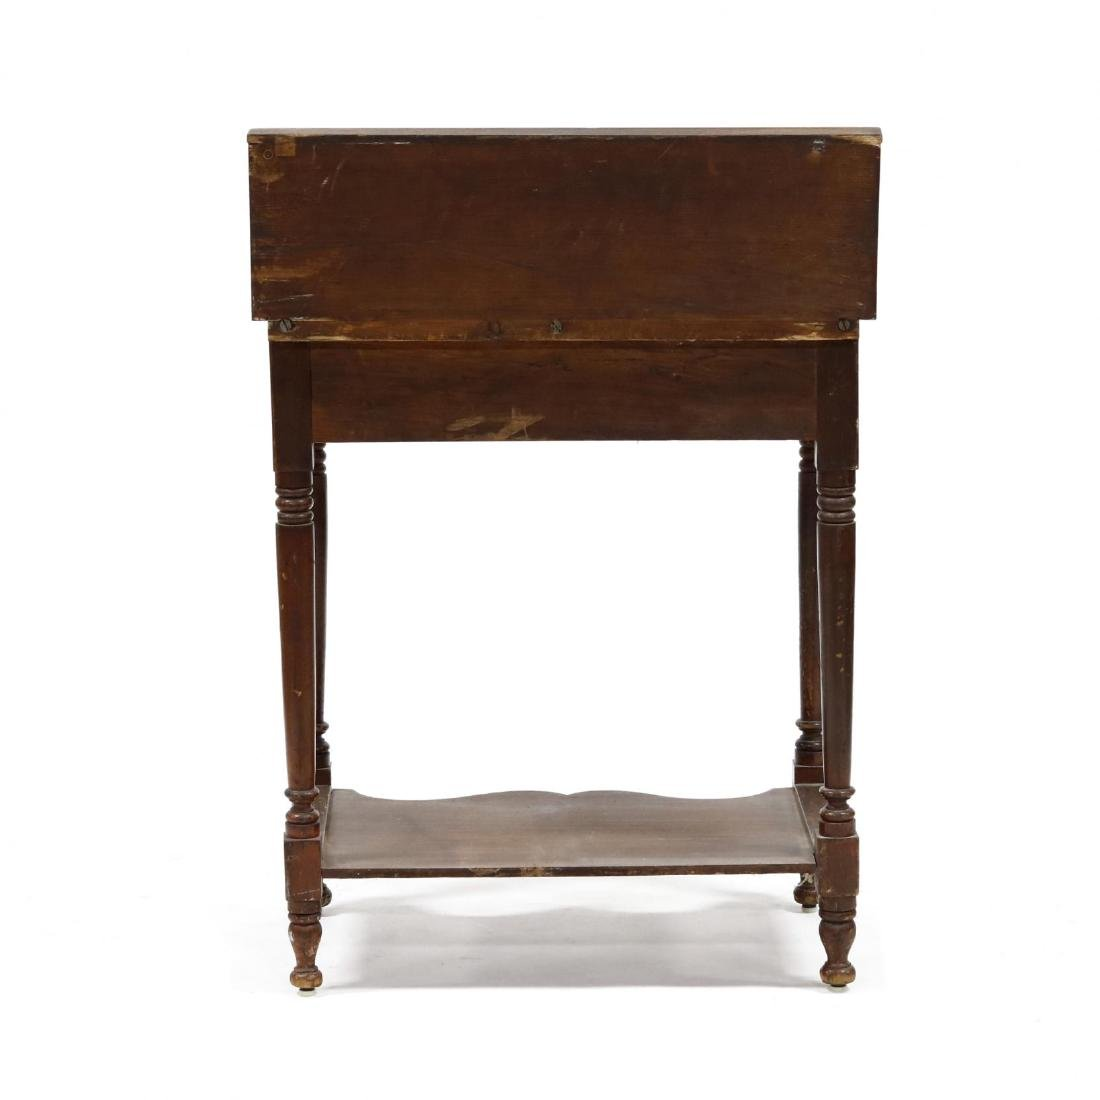 American Classical Marble Top Wash Stand - 3